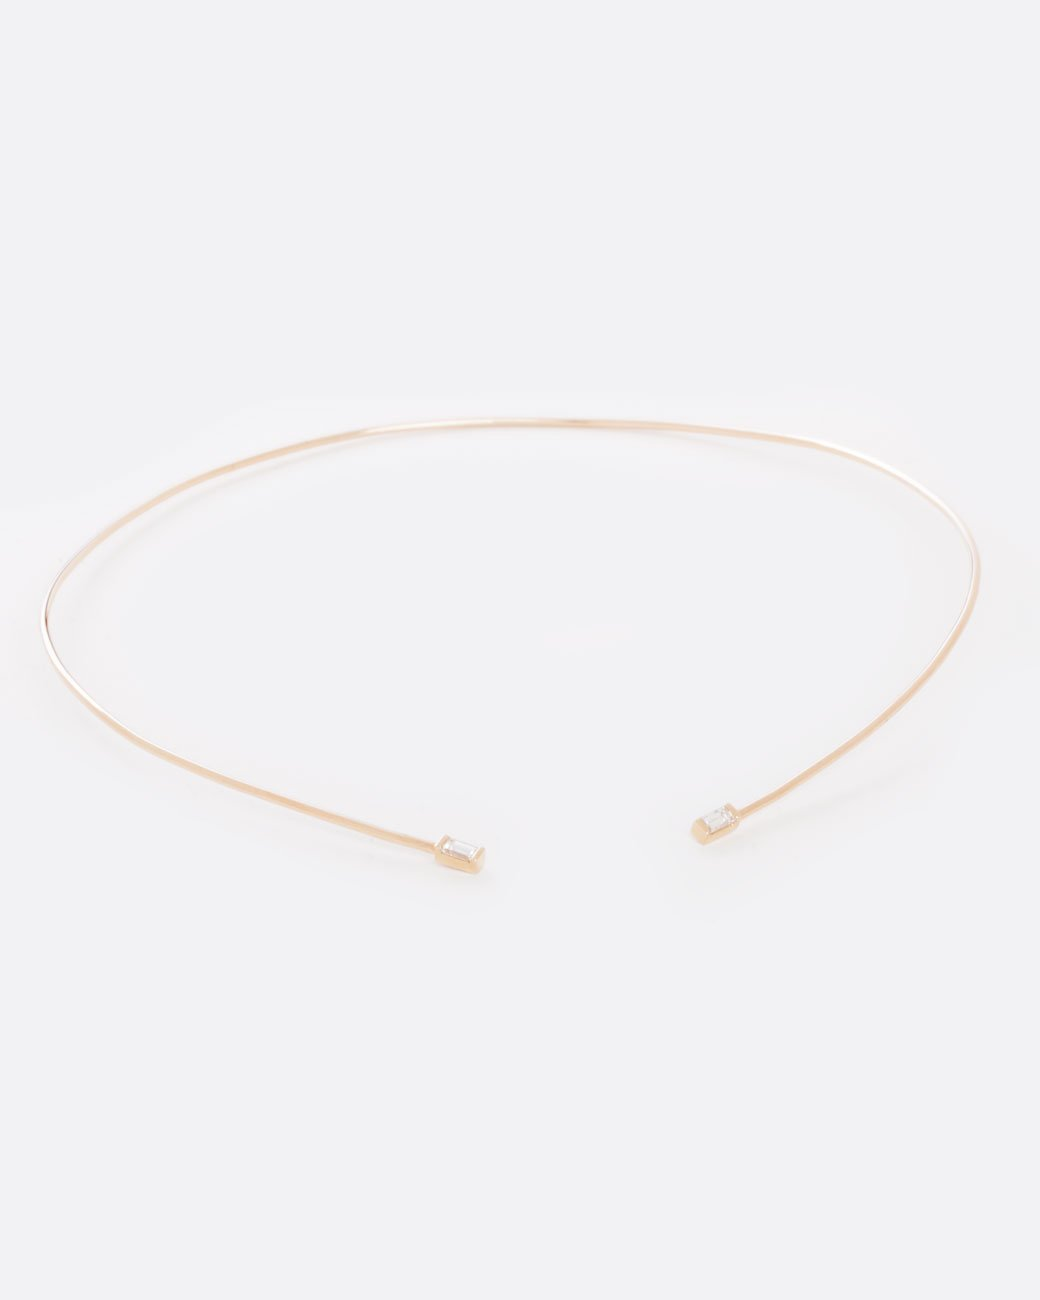 Selin Kent delicate gold necklace choker